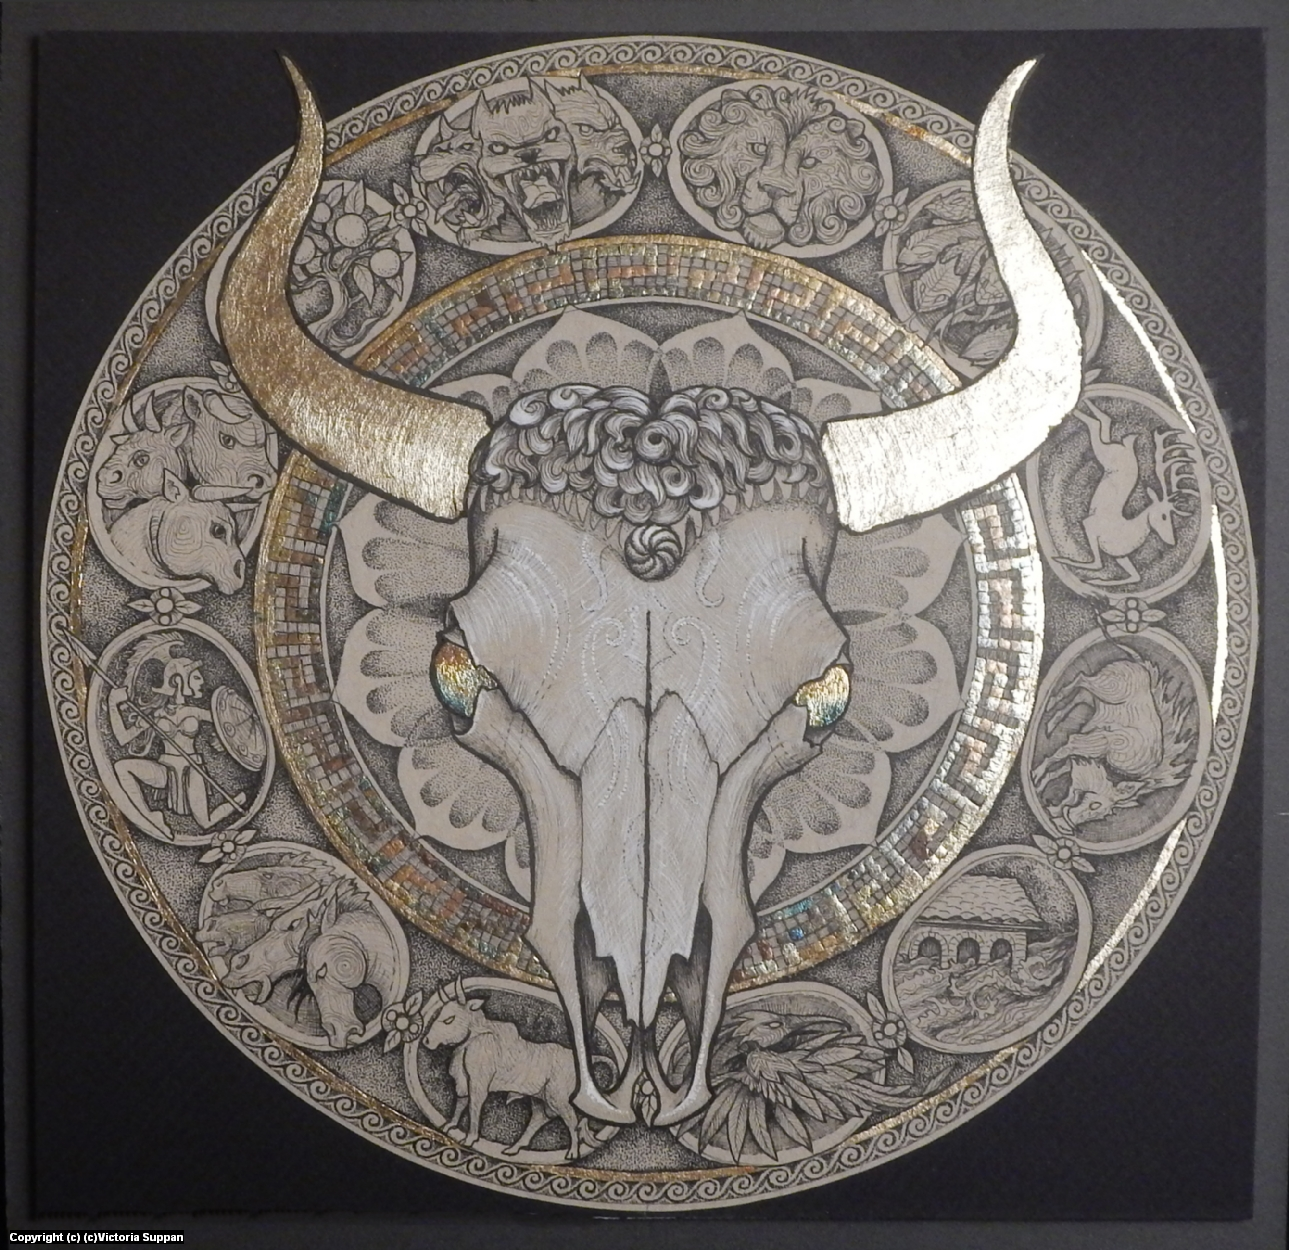 Capture the Cretan Bull - 7th labour of Hercules Artwork by Victoria Suppan